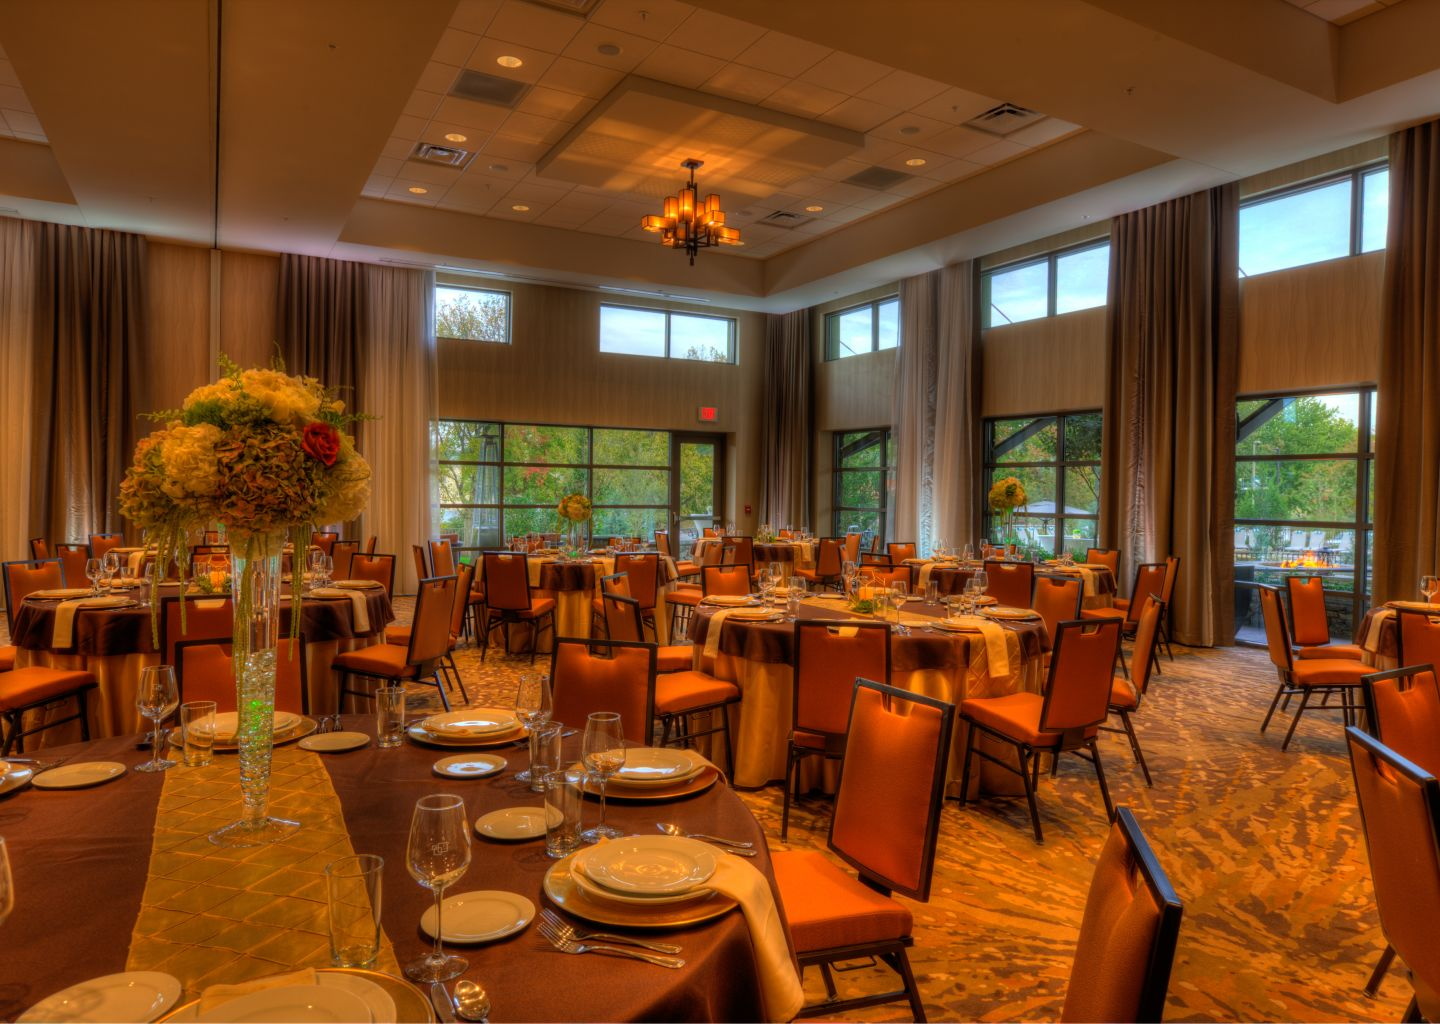 wedding banquet at Courtyard by Marriott Pigeon Forge hotel